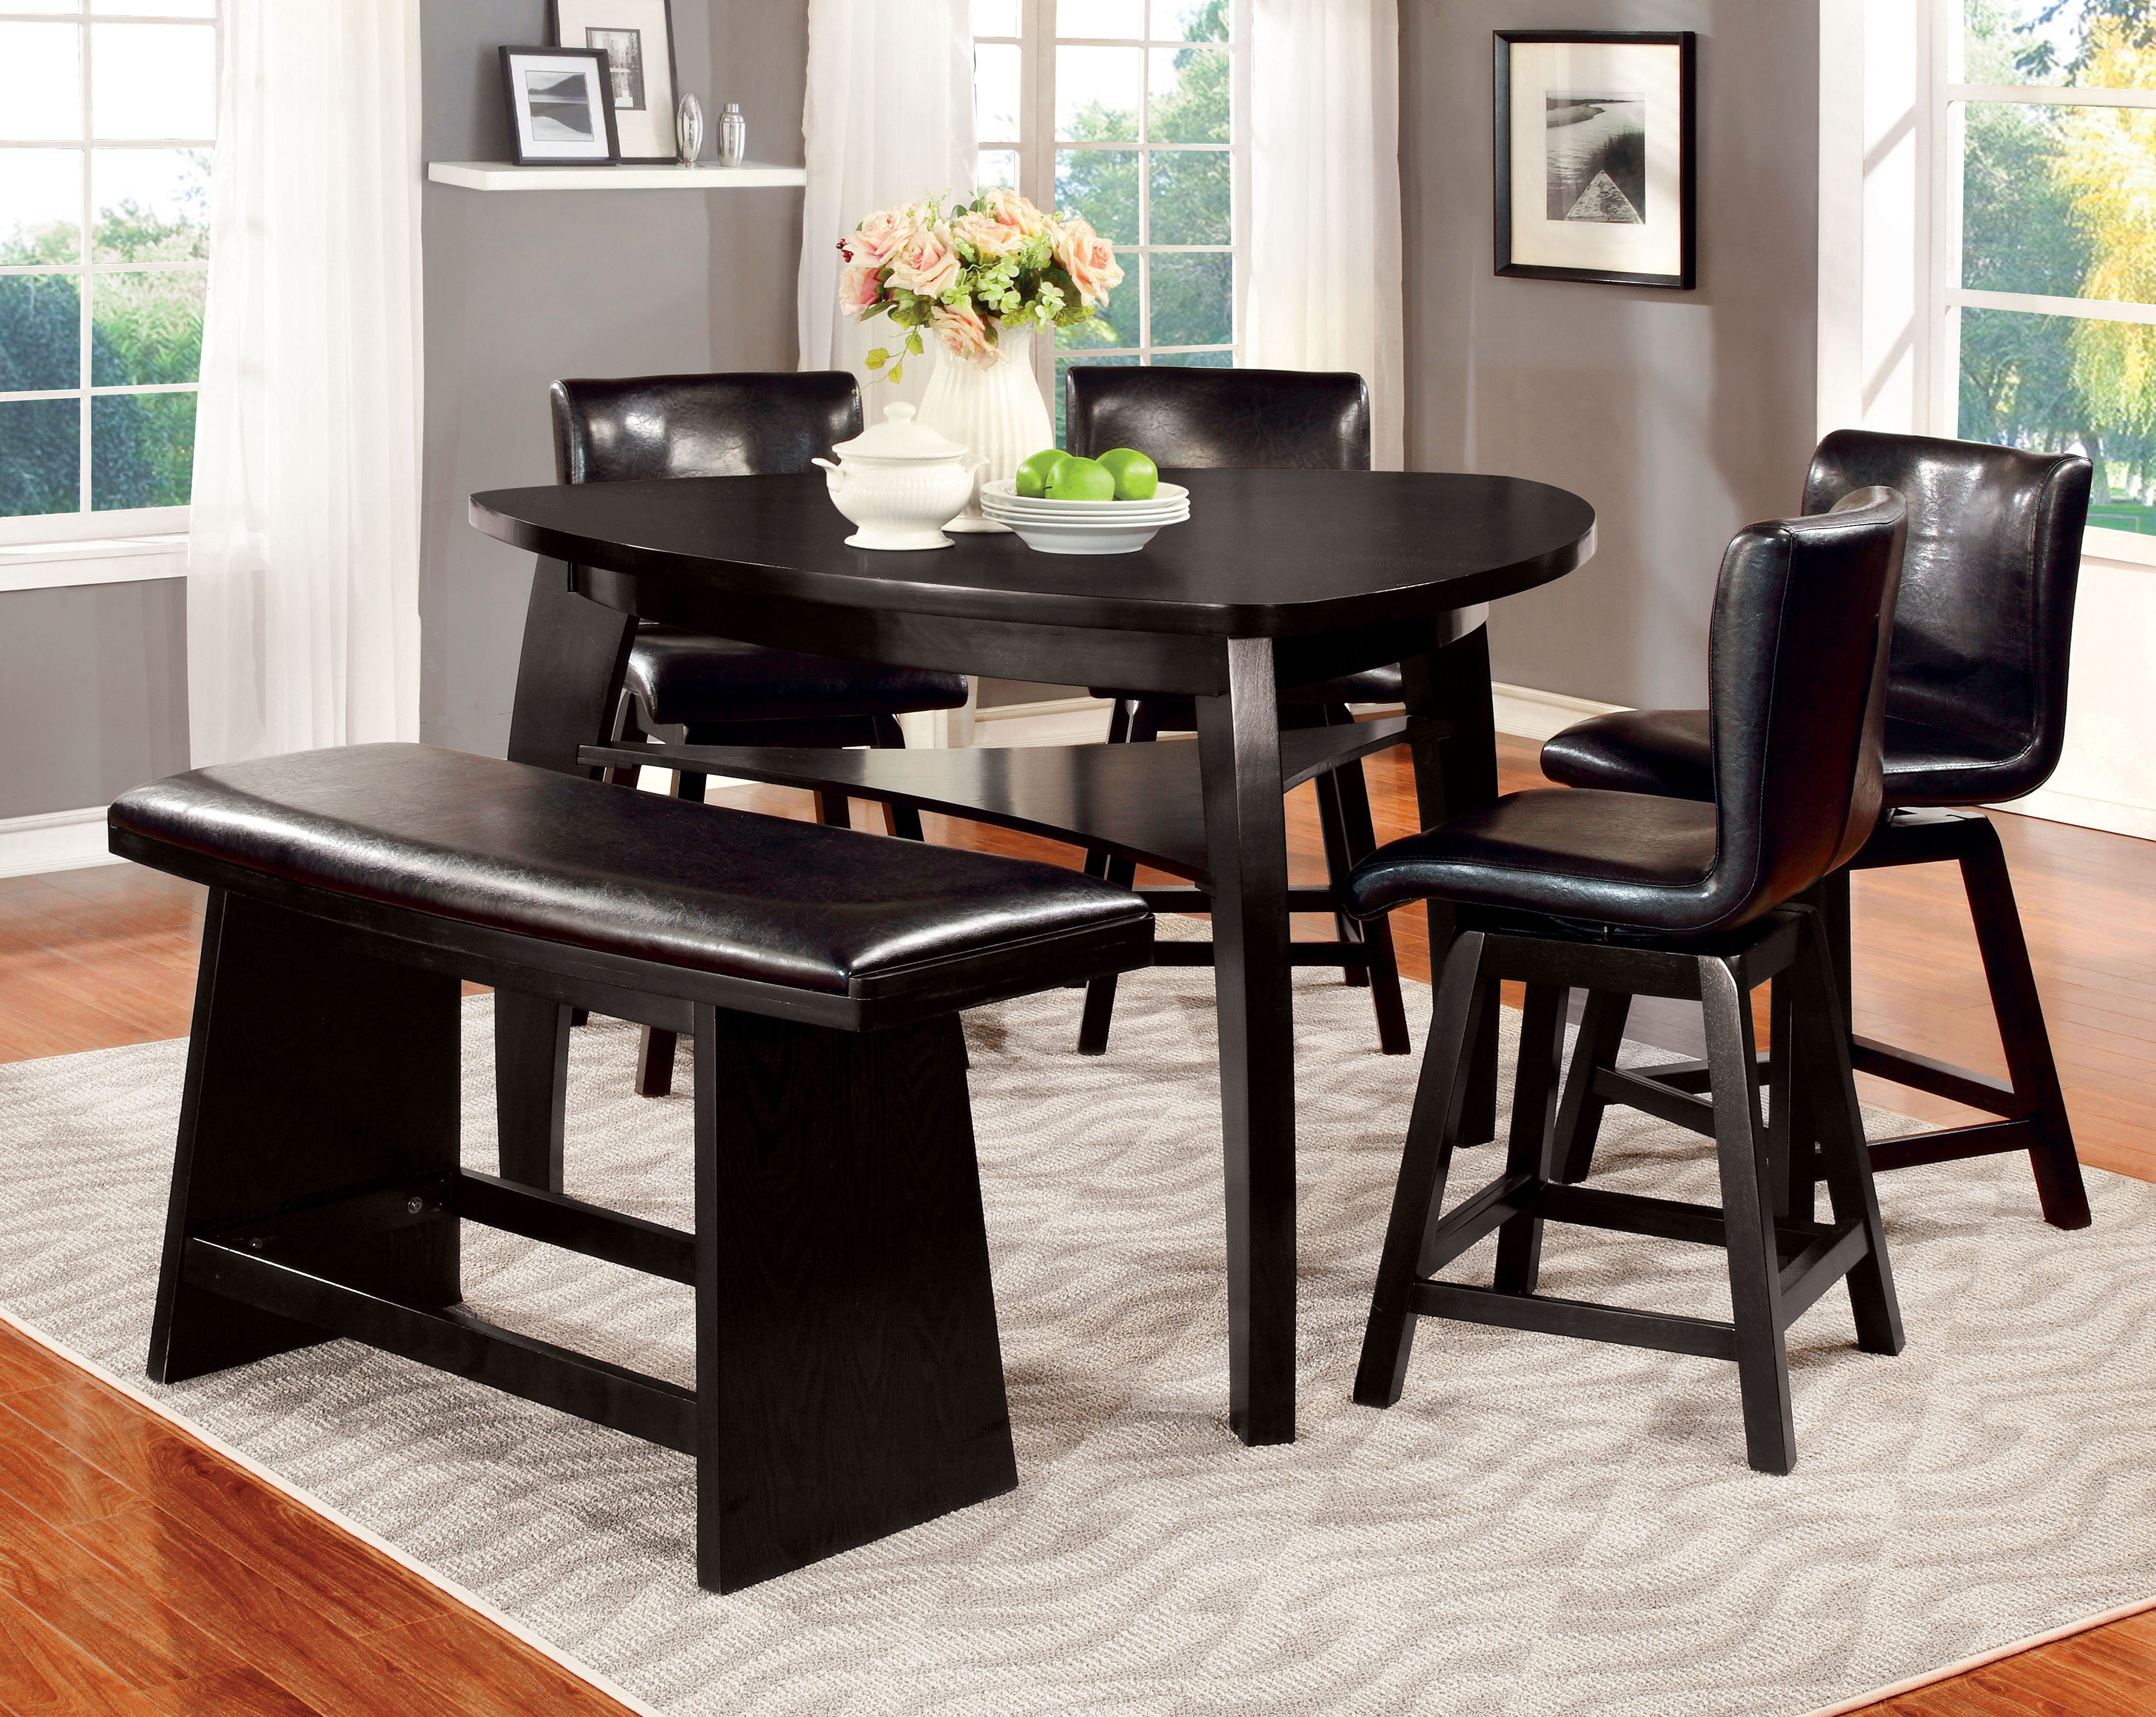 Anette 3 Piece Counter Height Dining Sets With Regard To Popular Hokku Designs Lawrence 6 Piece Counter Height Pub Table Set (View 11 of 25)